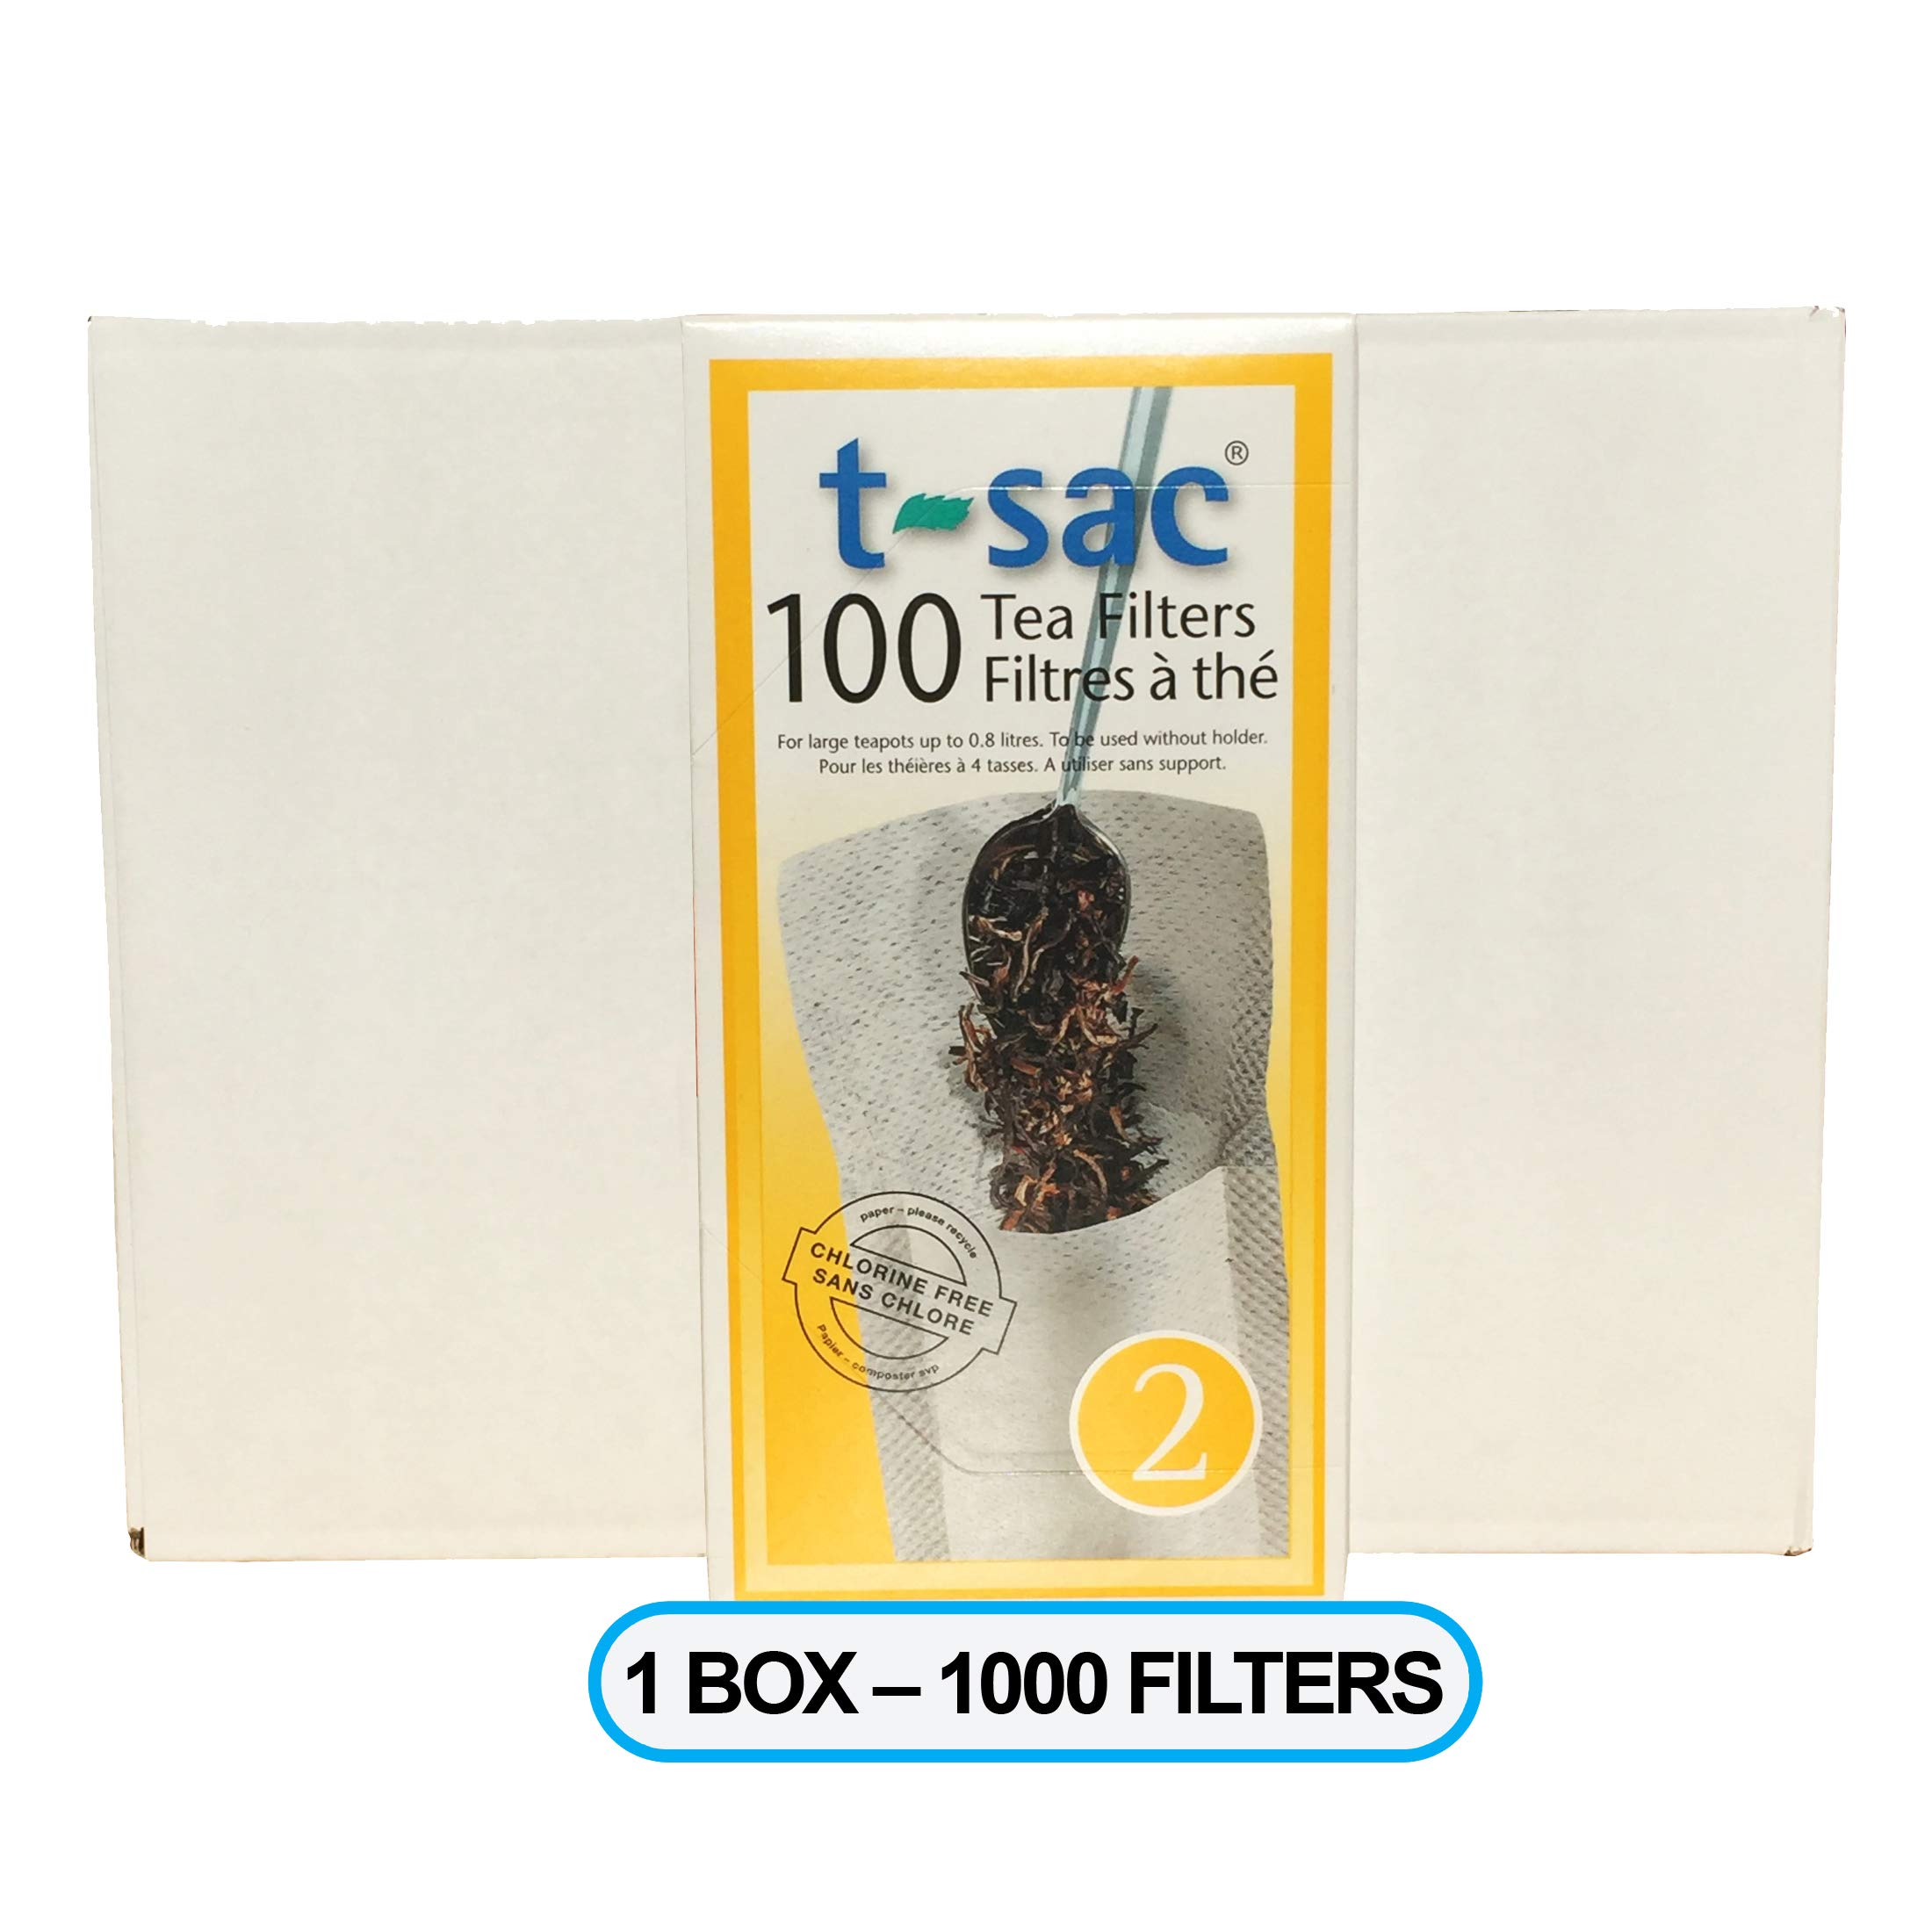 Modern Tea Filter Bags, Disposable Tea Infuser, Size 2, Box of 1000 Filters - Heat Sealable, Natural, Easy to Use Anywhere, No Cleanup - Perfect for Teas, Coffee & Herbs - from Magic Teafit by Magic Teafit